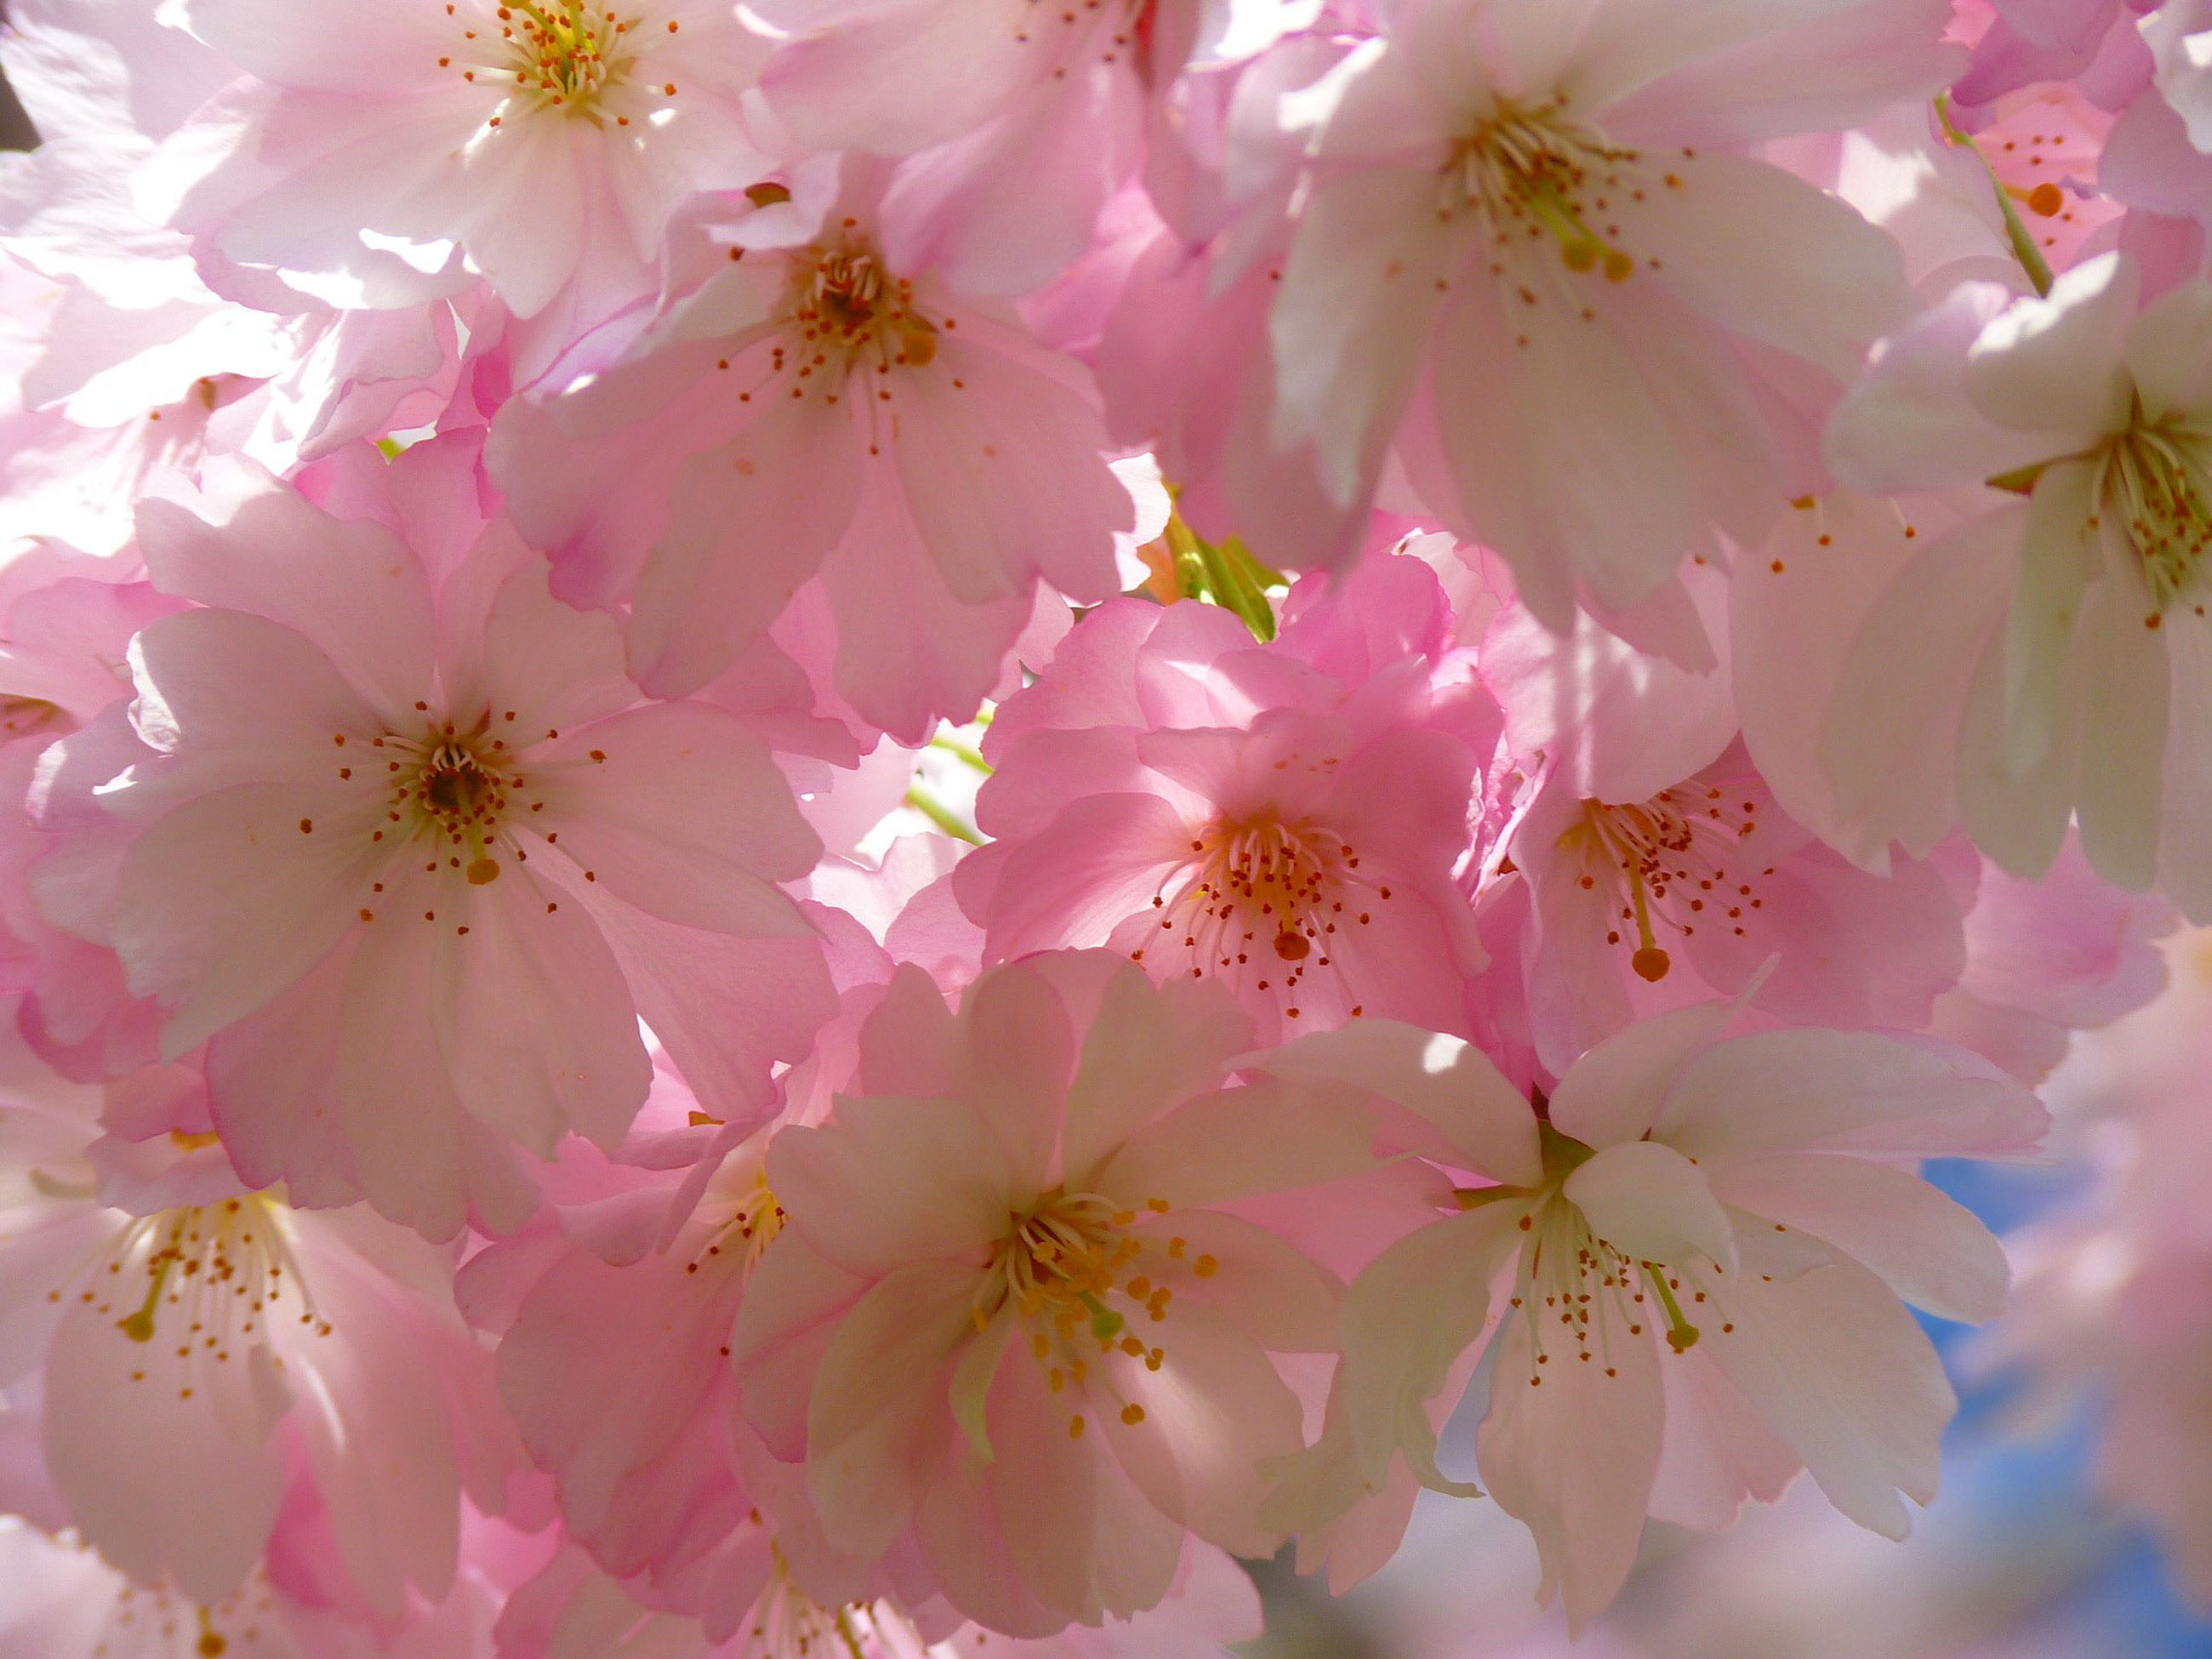 flower, freshness, fragility, petal, pink color, beauty in nature, growth, flower head, nature, close-up, blossom, blooming, stamen, pink, in bloom, pollen, backgrounds, cherry blossom, low angle view, botany